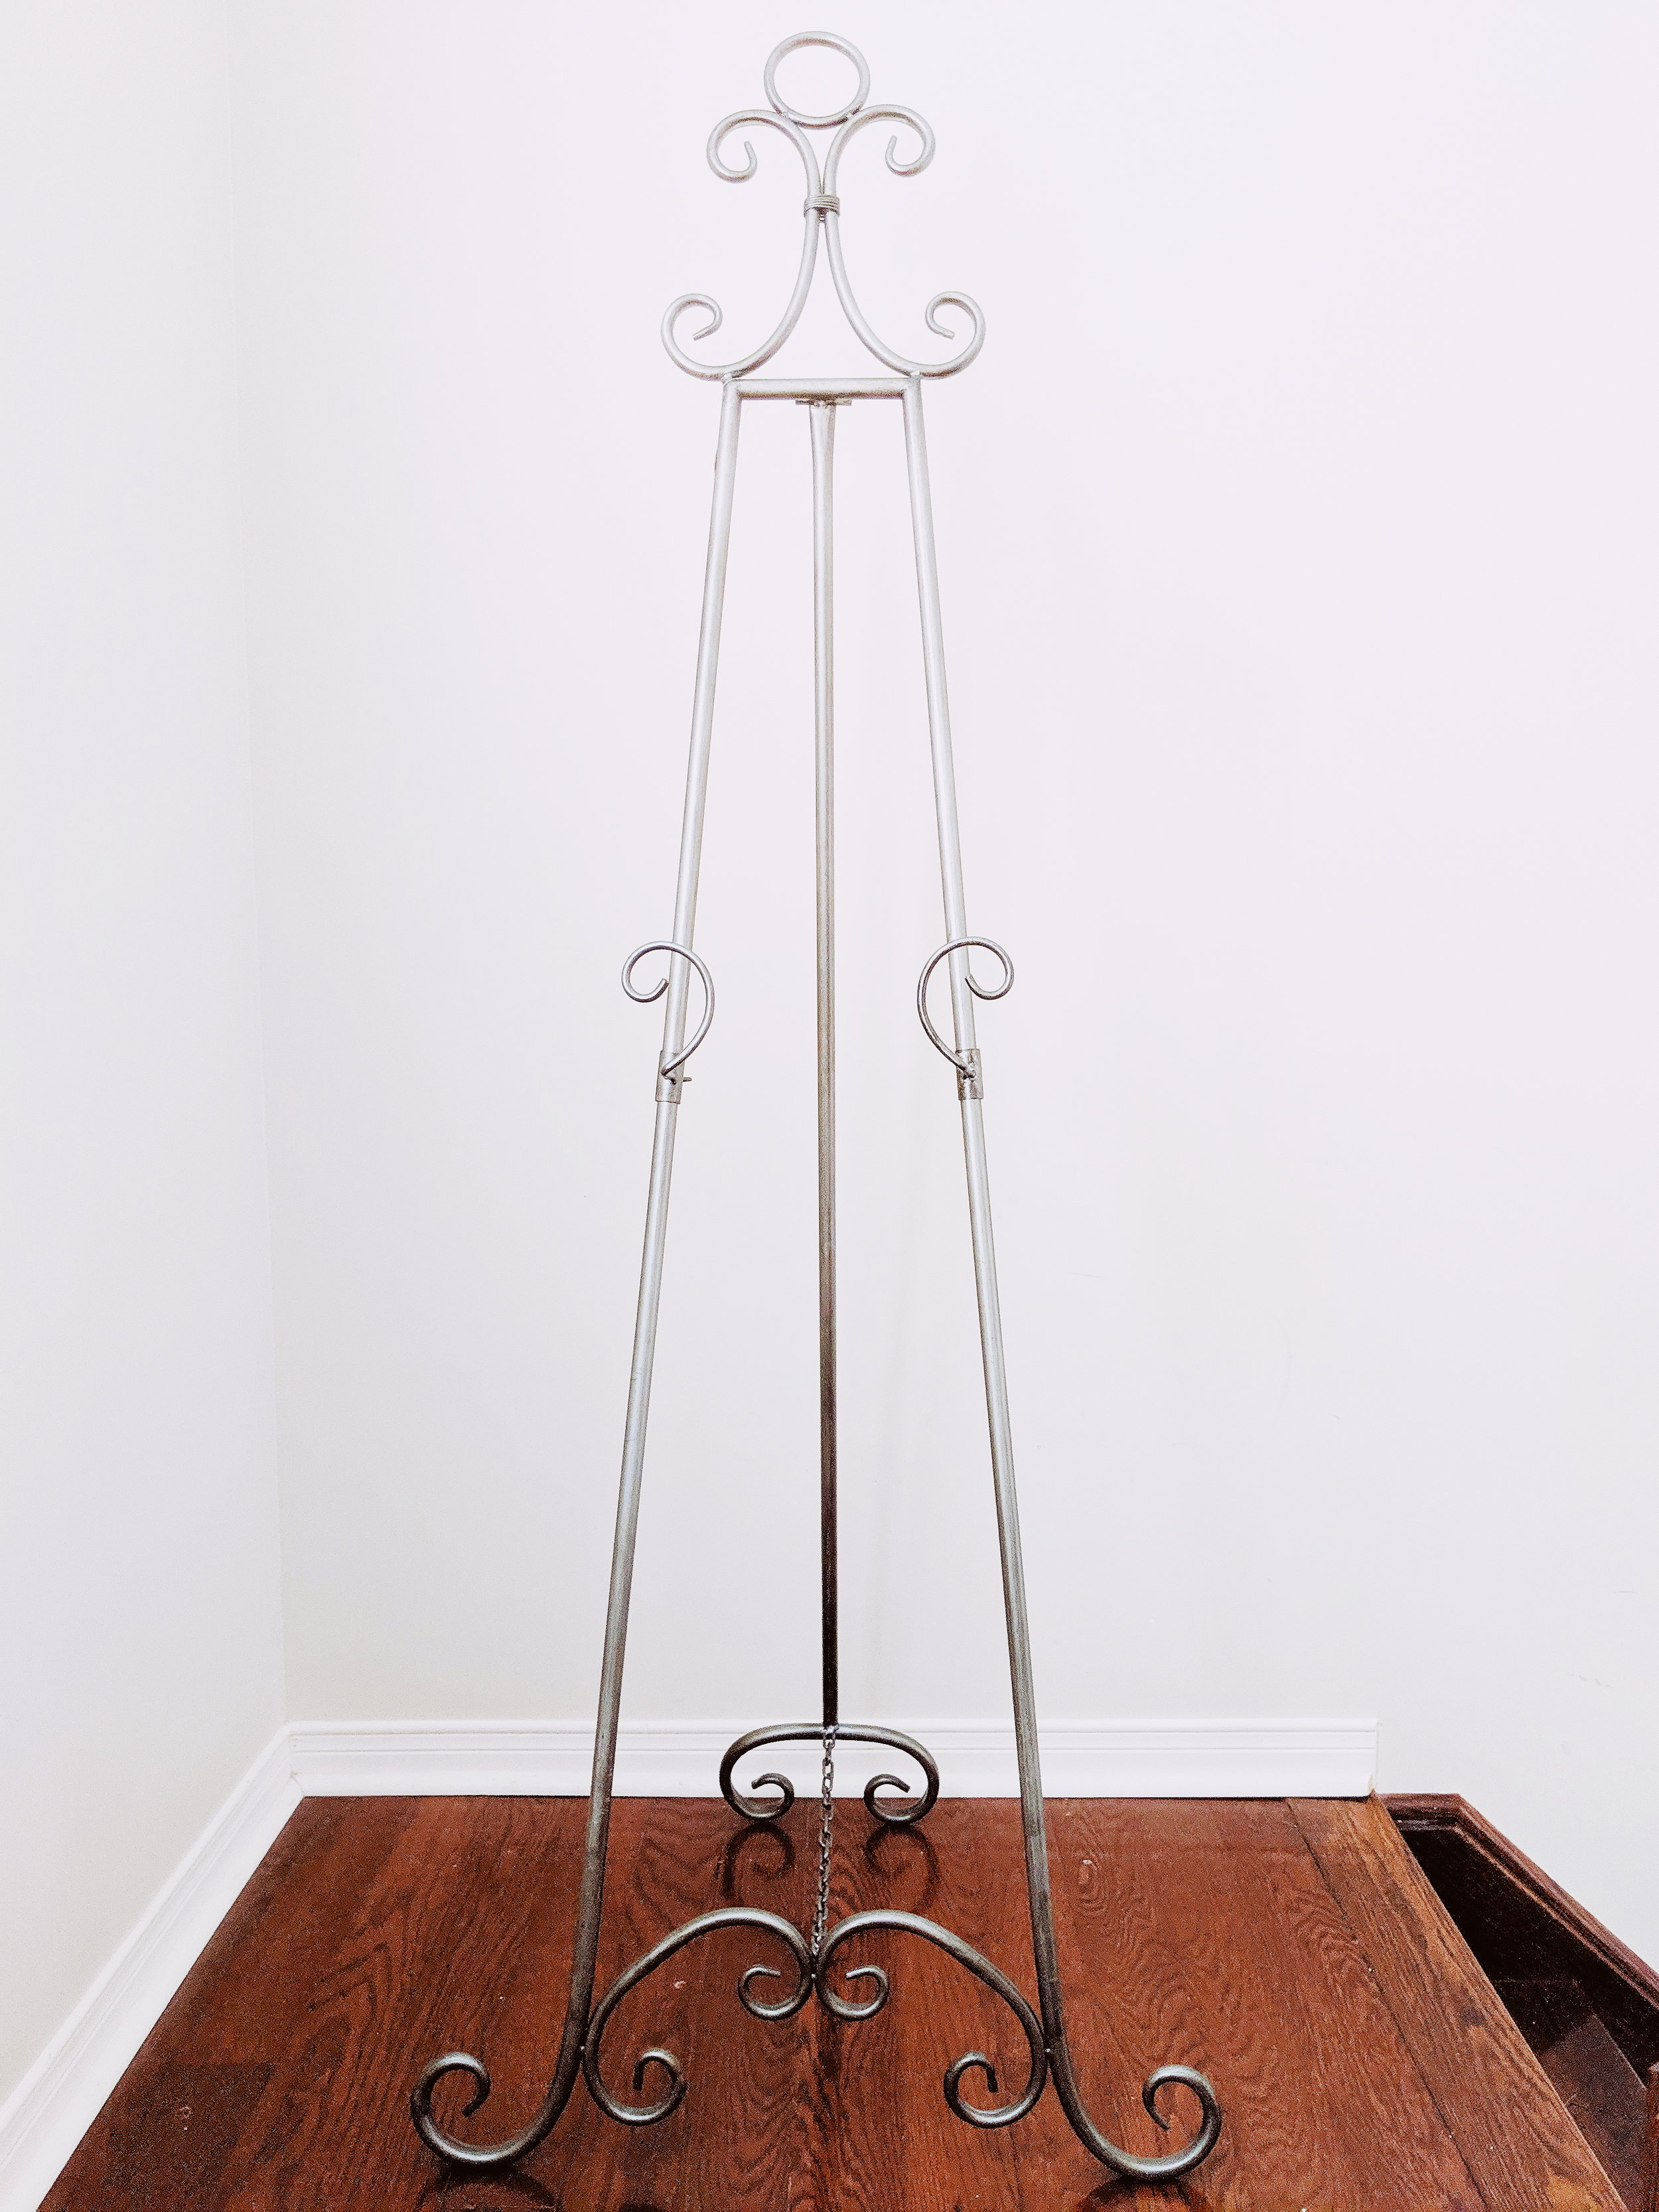 Floor Easel - Adjustable. Ideal for welcome sign in acrylic, mirror and wood.Rental Fee: $30; Security Deposit: $60